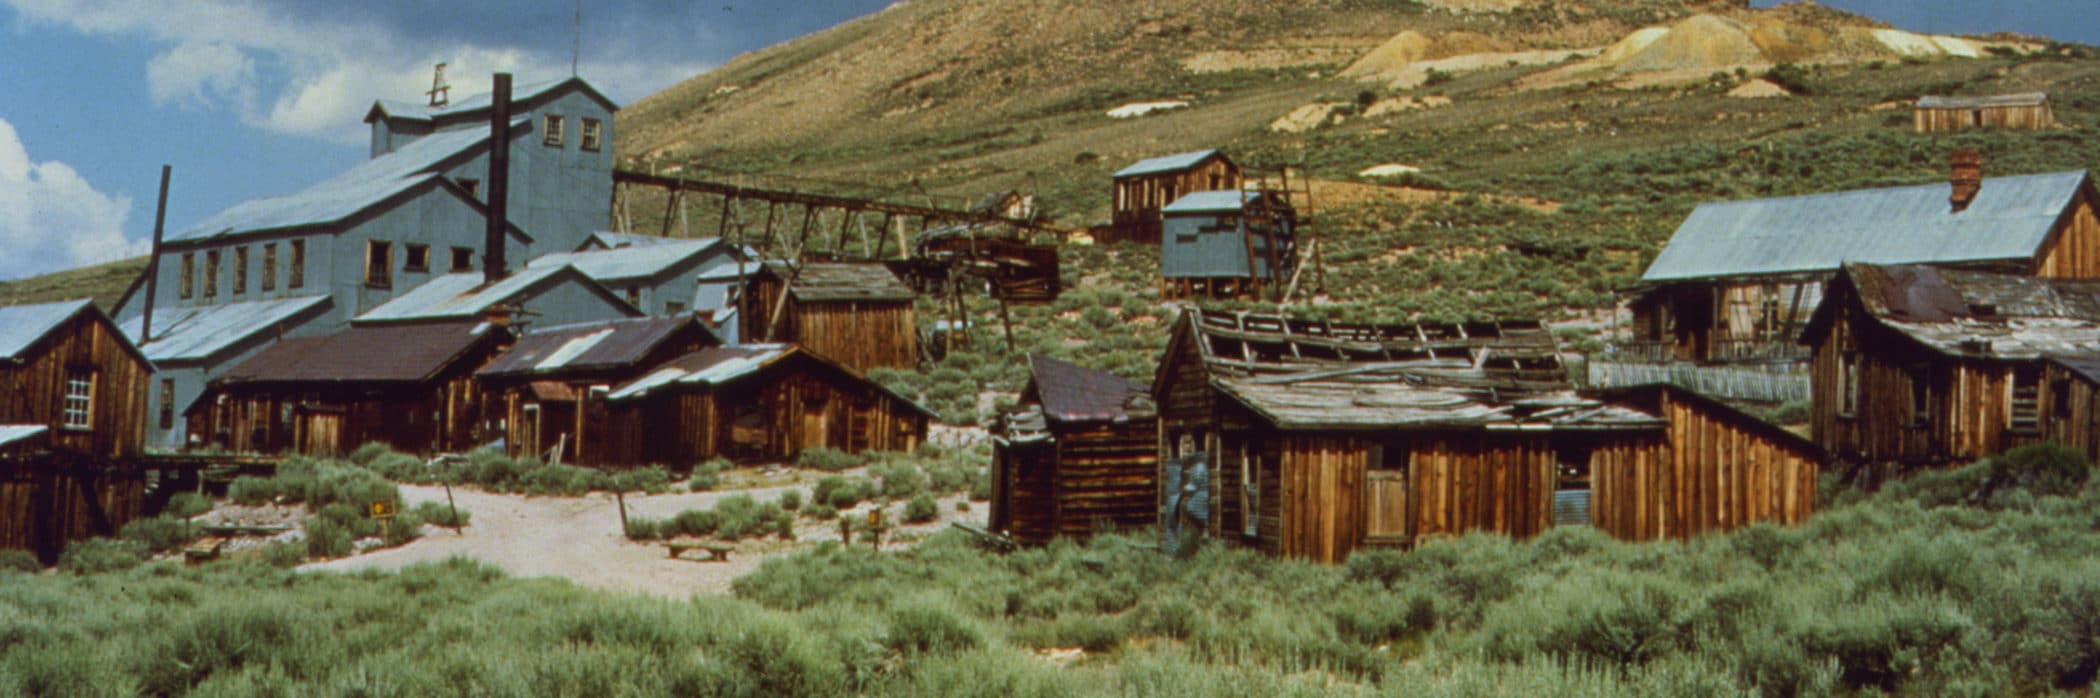 Buildings and mining infrastructure at Bodie State Historic Park.